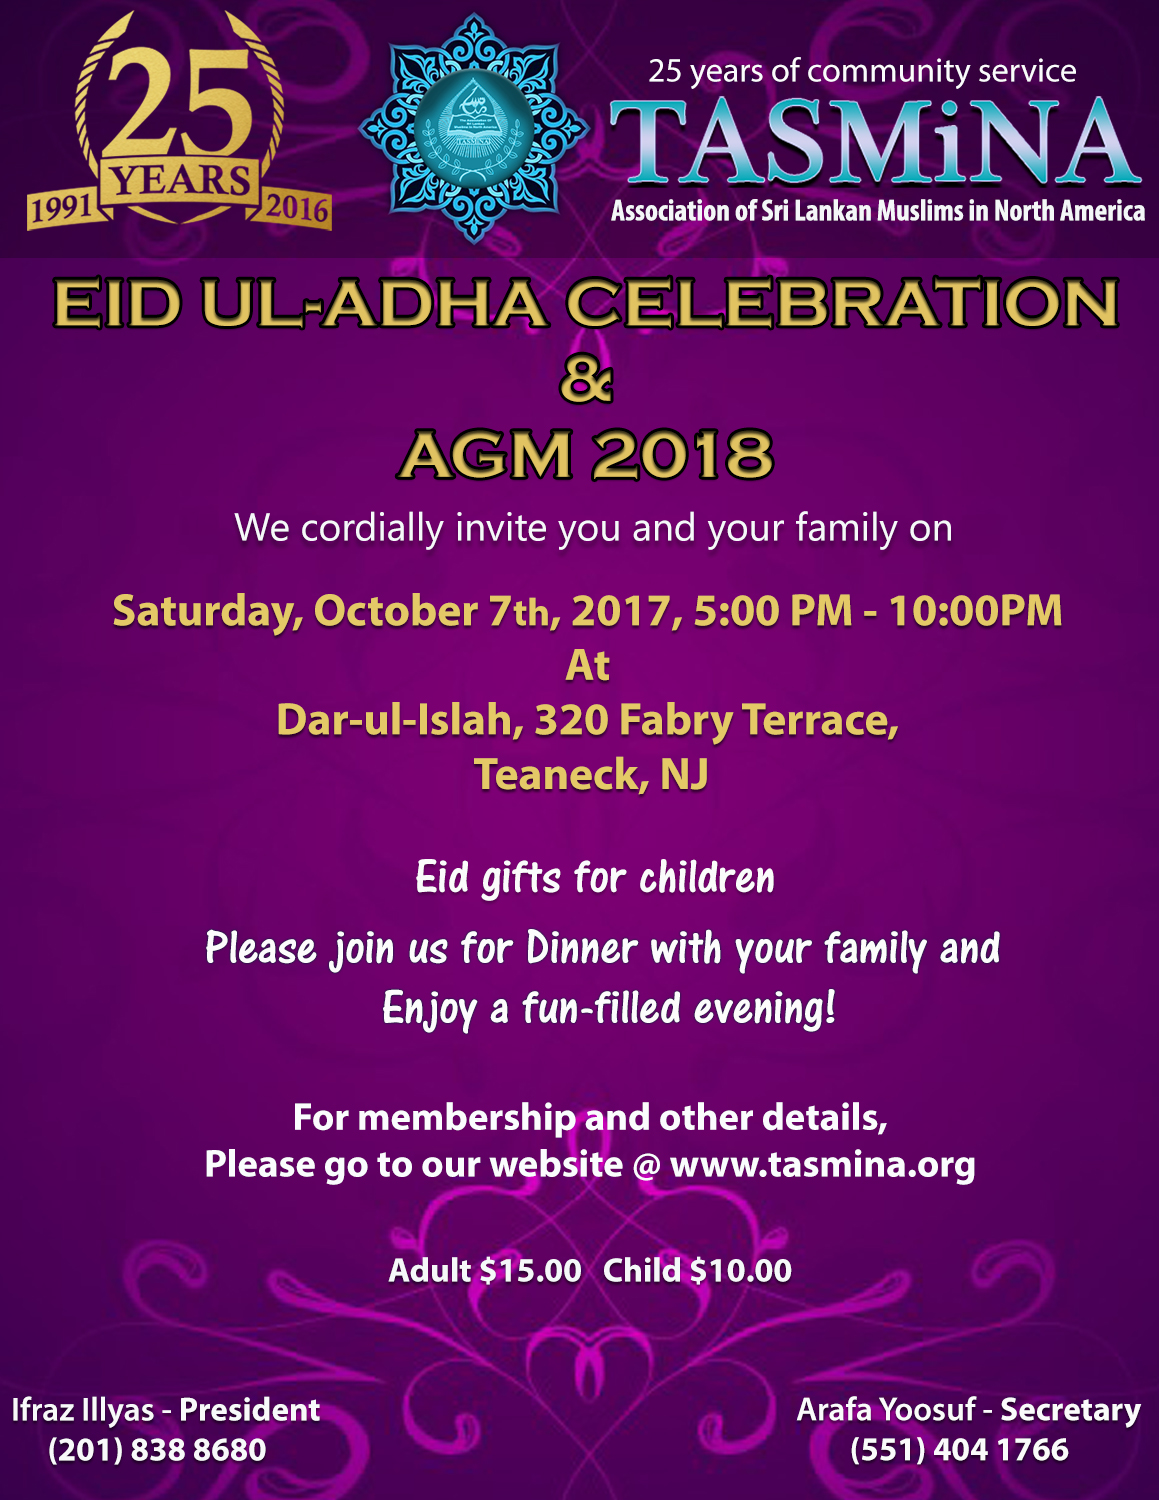 EID Ul- Adha Celebration & AGM 2018 | TASMiNA